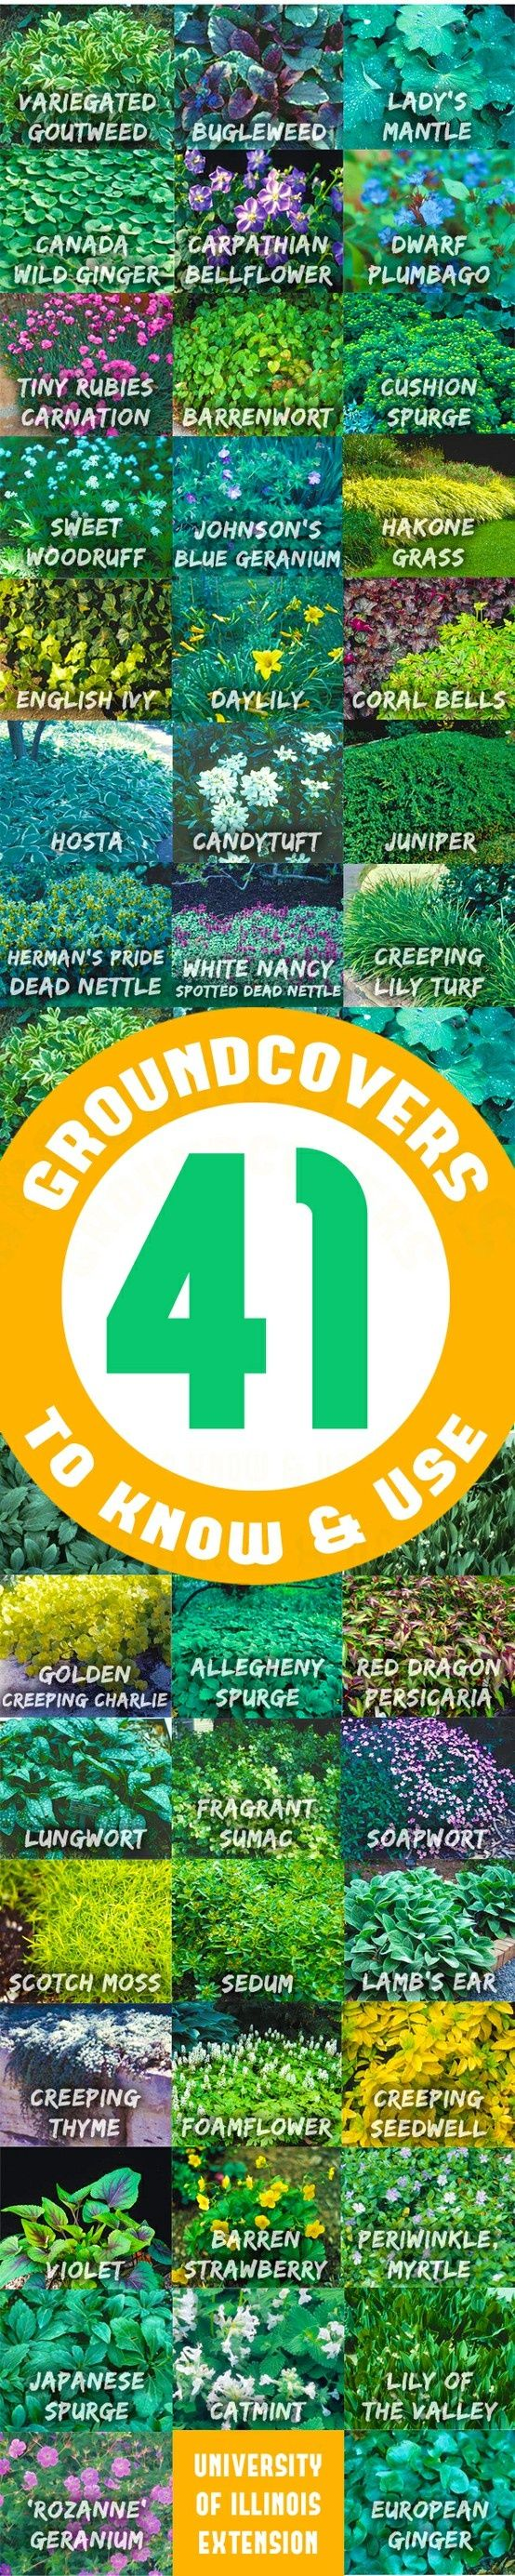 41 Groundcovers to Know & Use - Chicfluff